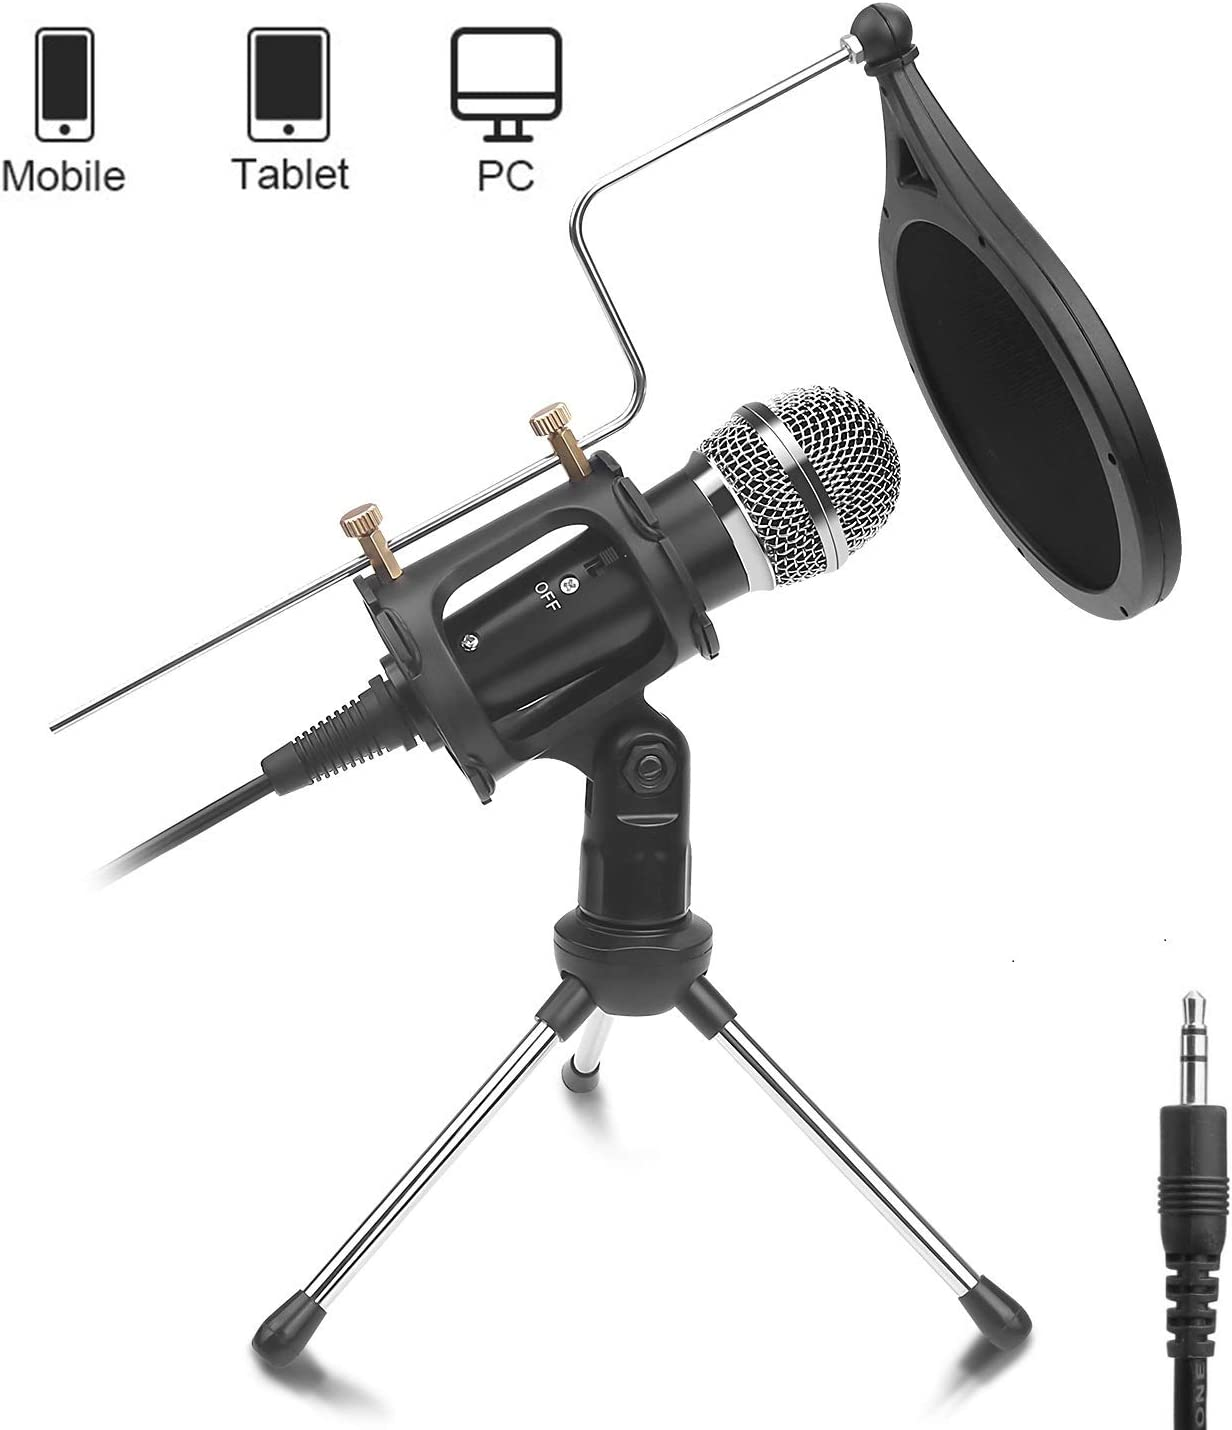 DricRoda Phone Microphone, 3.5mm Condenser Recording Microphone Computer MIC Set for Karaoke, Gaming, Podcast, Video Conference, Facebook, YouTube (X-1)